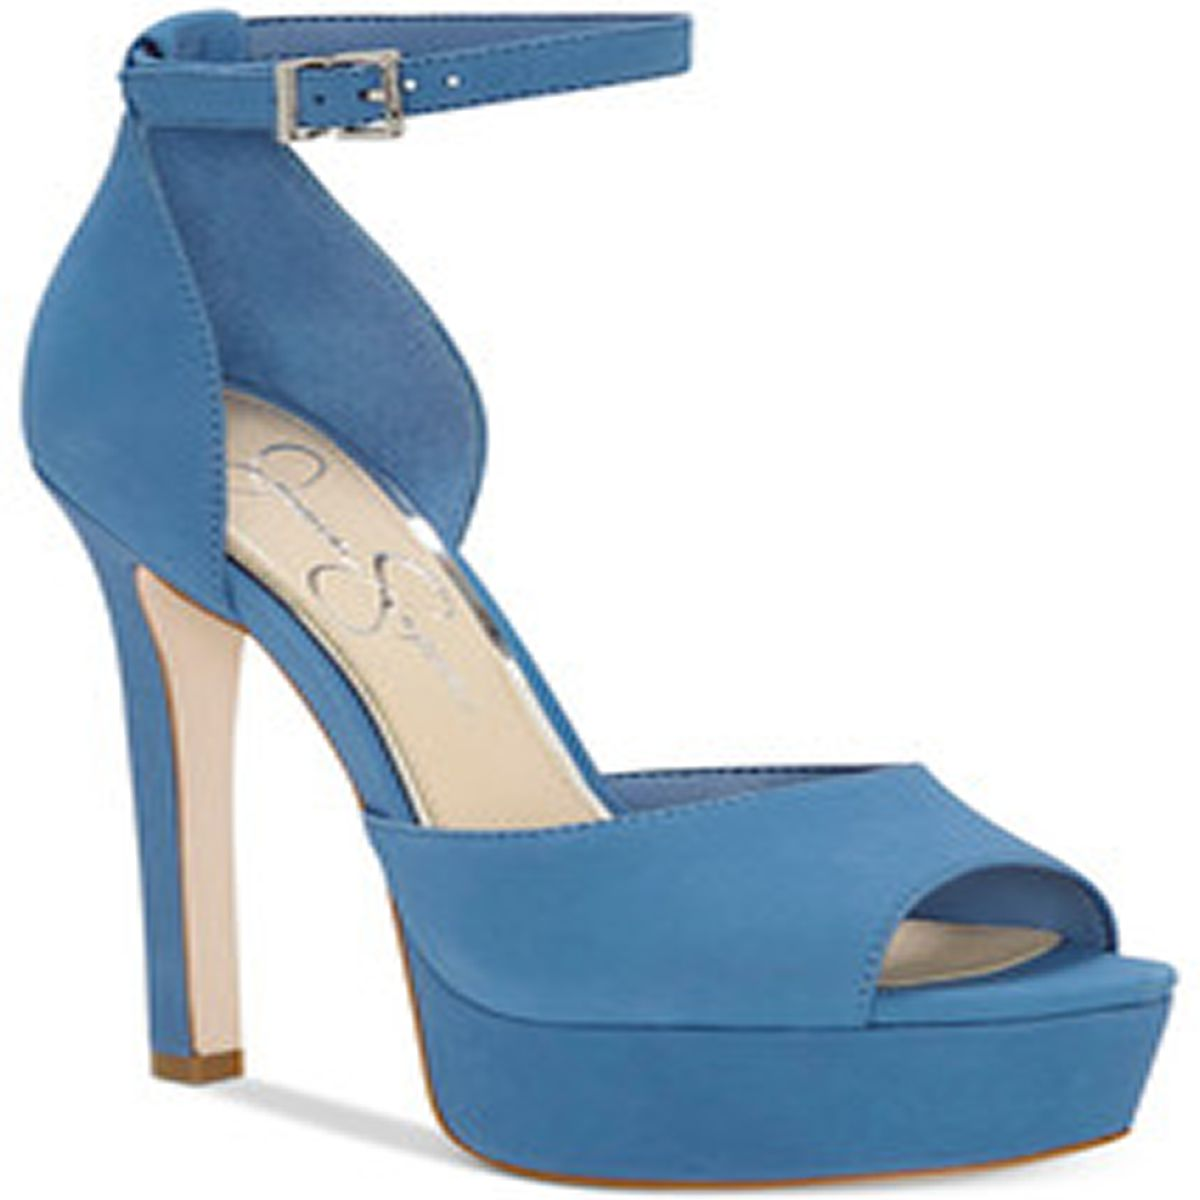 4bfc32831f17 Jessica Simpson. Pumps and Heels